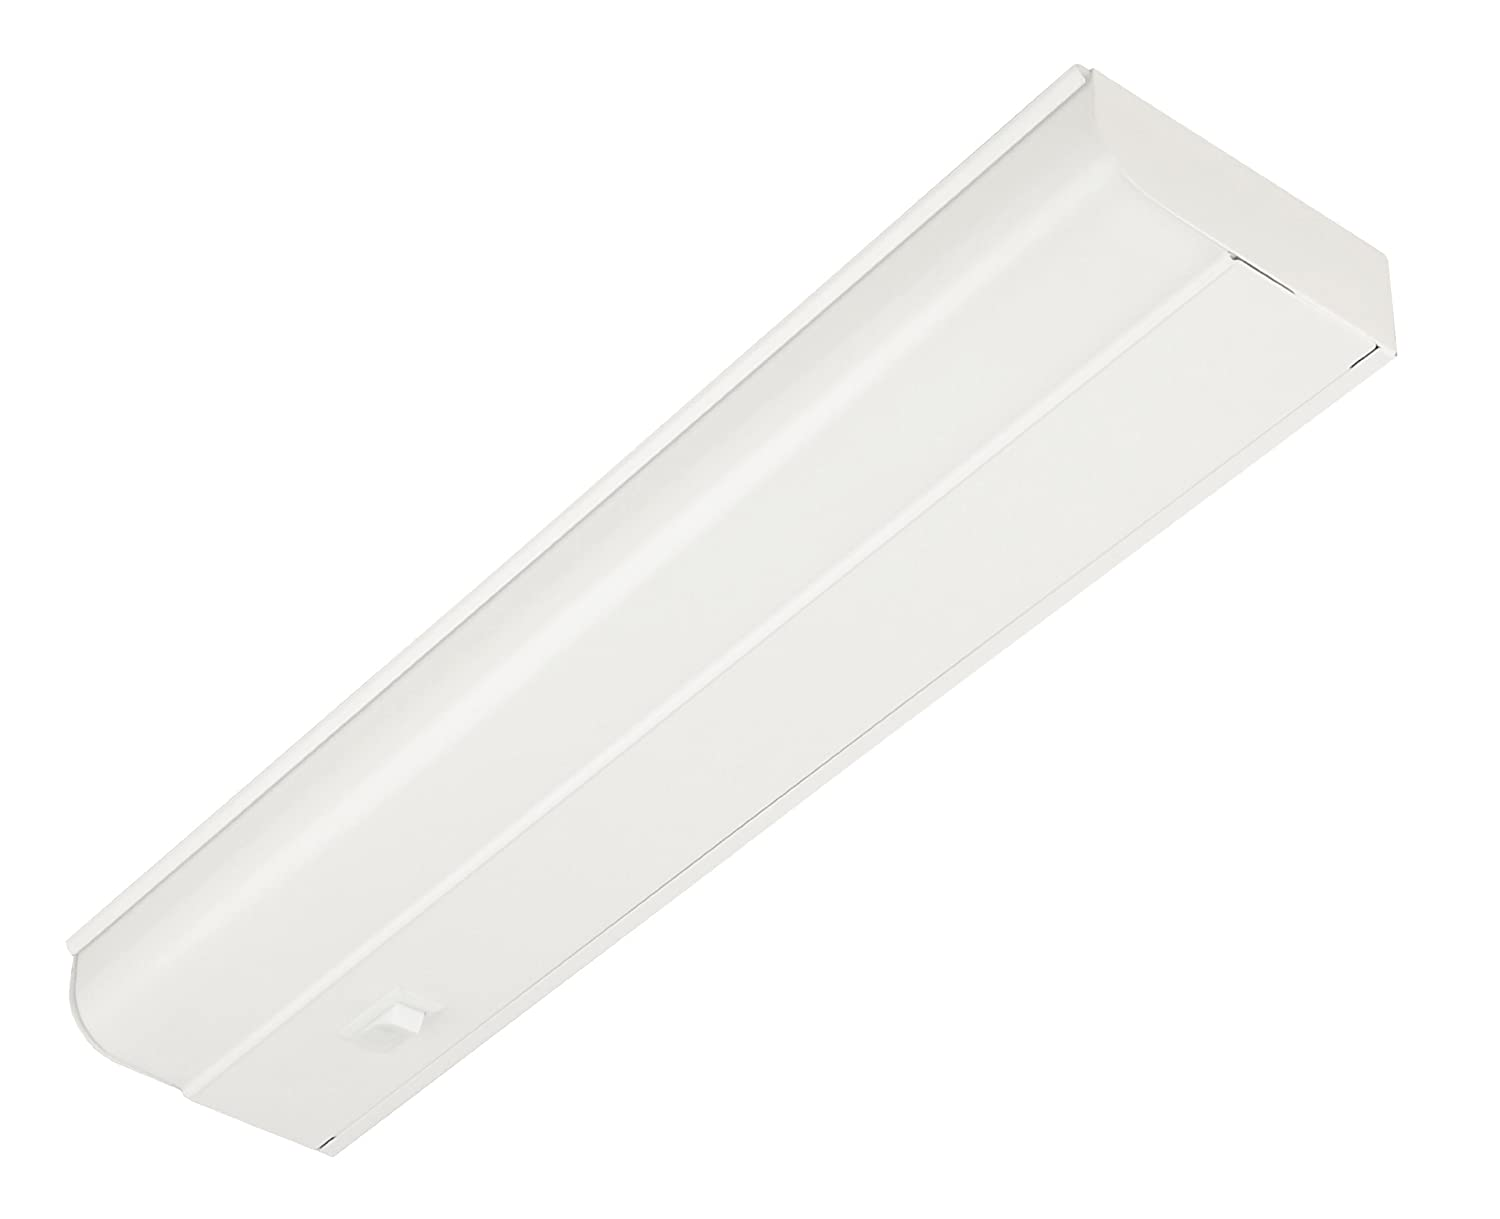 Good Earth Lighting G9318D-T8-WHI 18-Inch Under Cabinet Fixture with Direct Wire, White